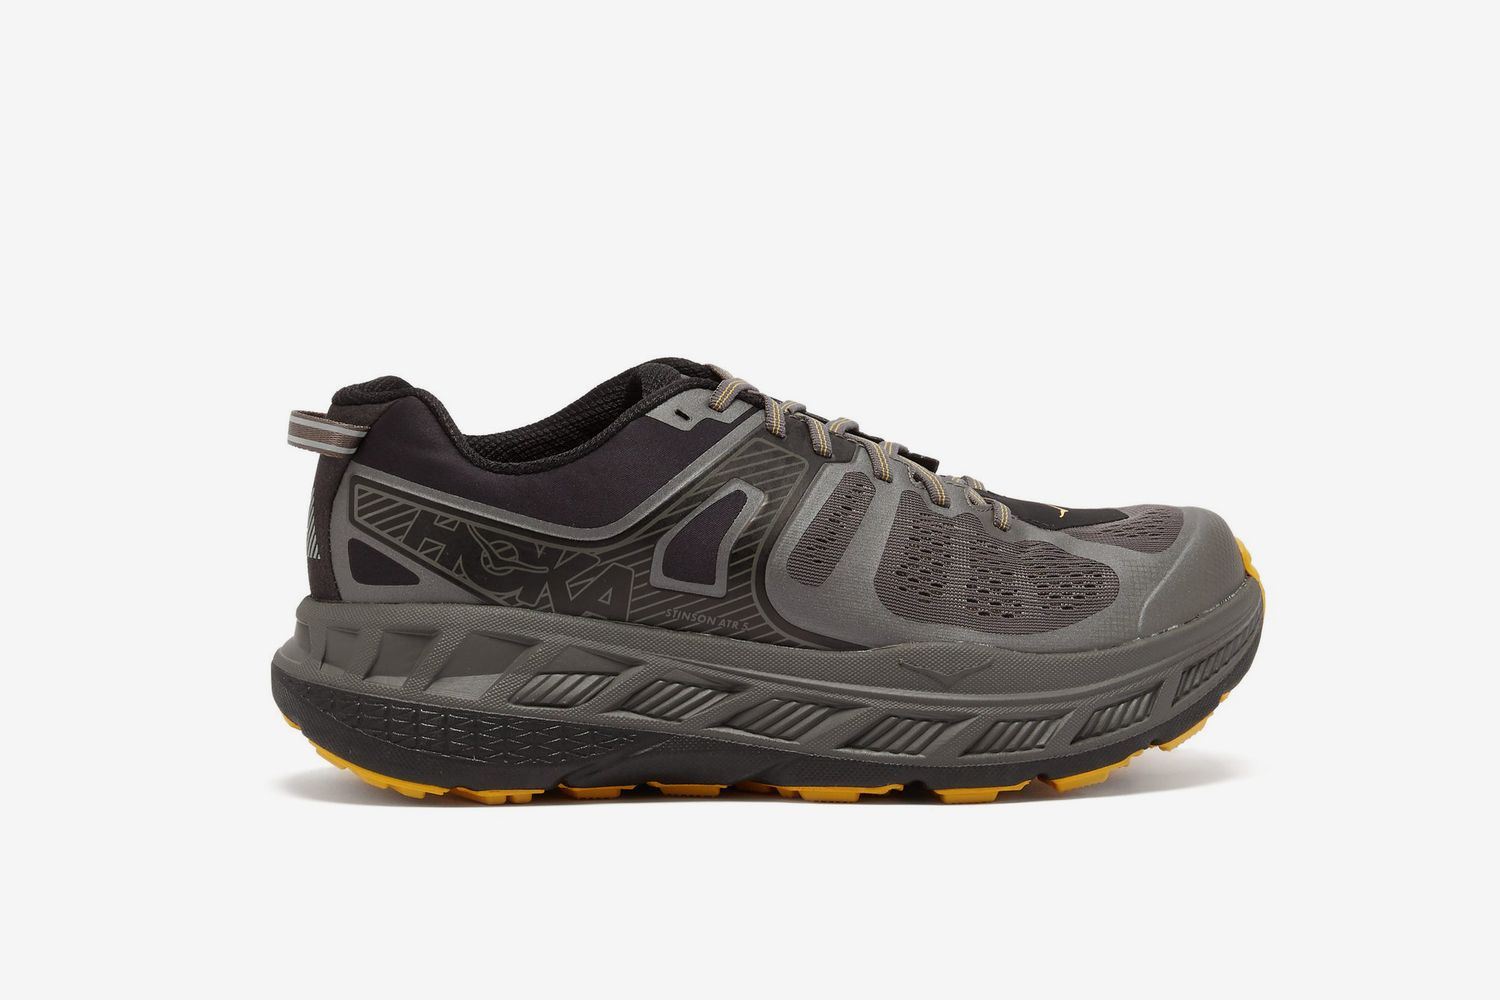 Stinson Atr 5 Mesh Running Sneakers